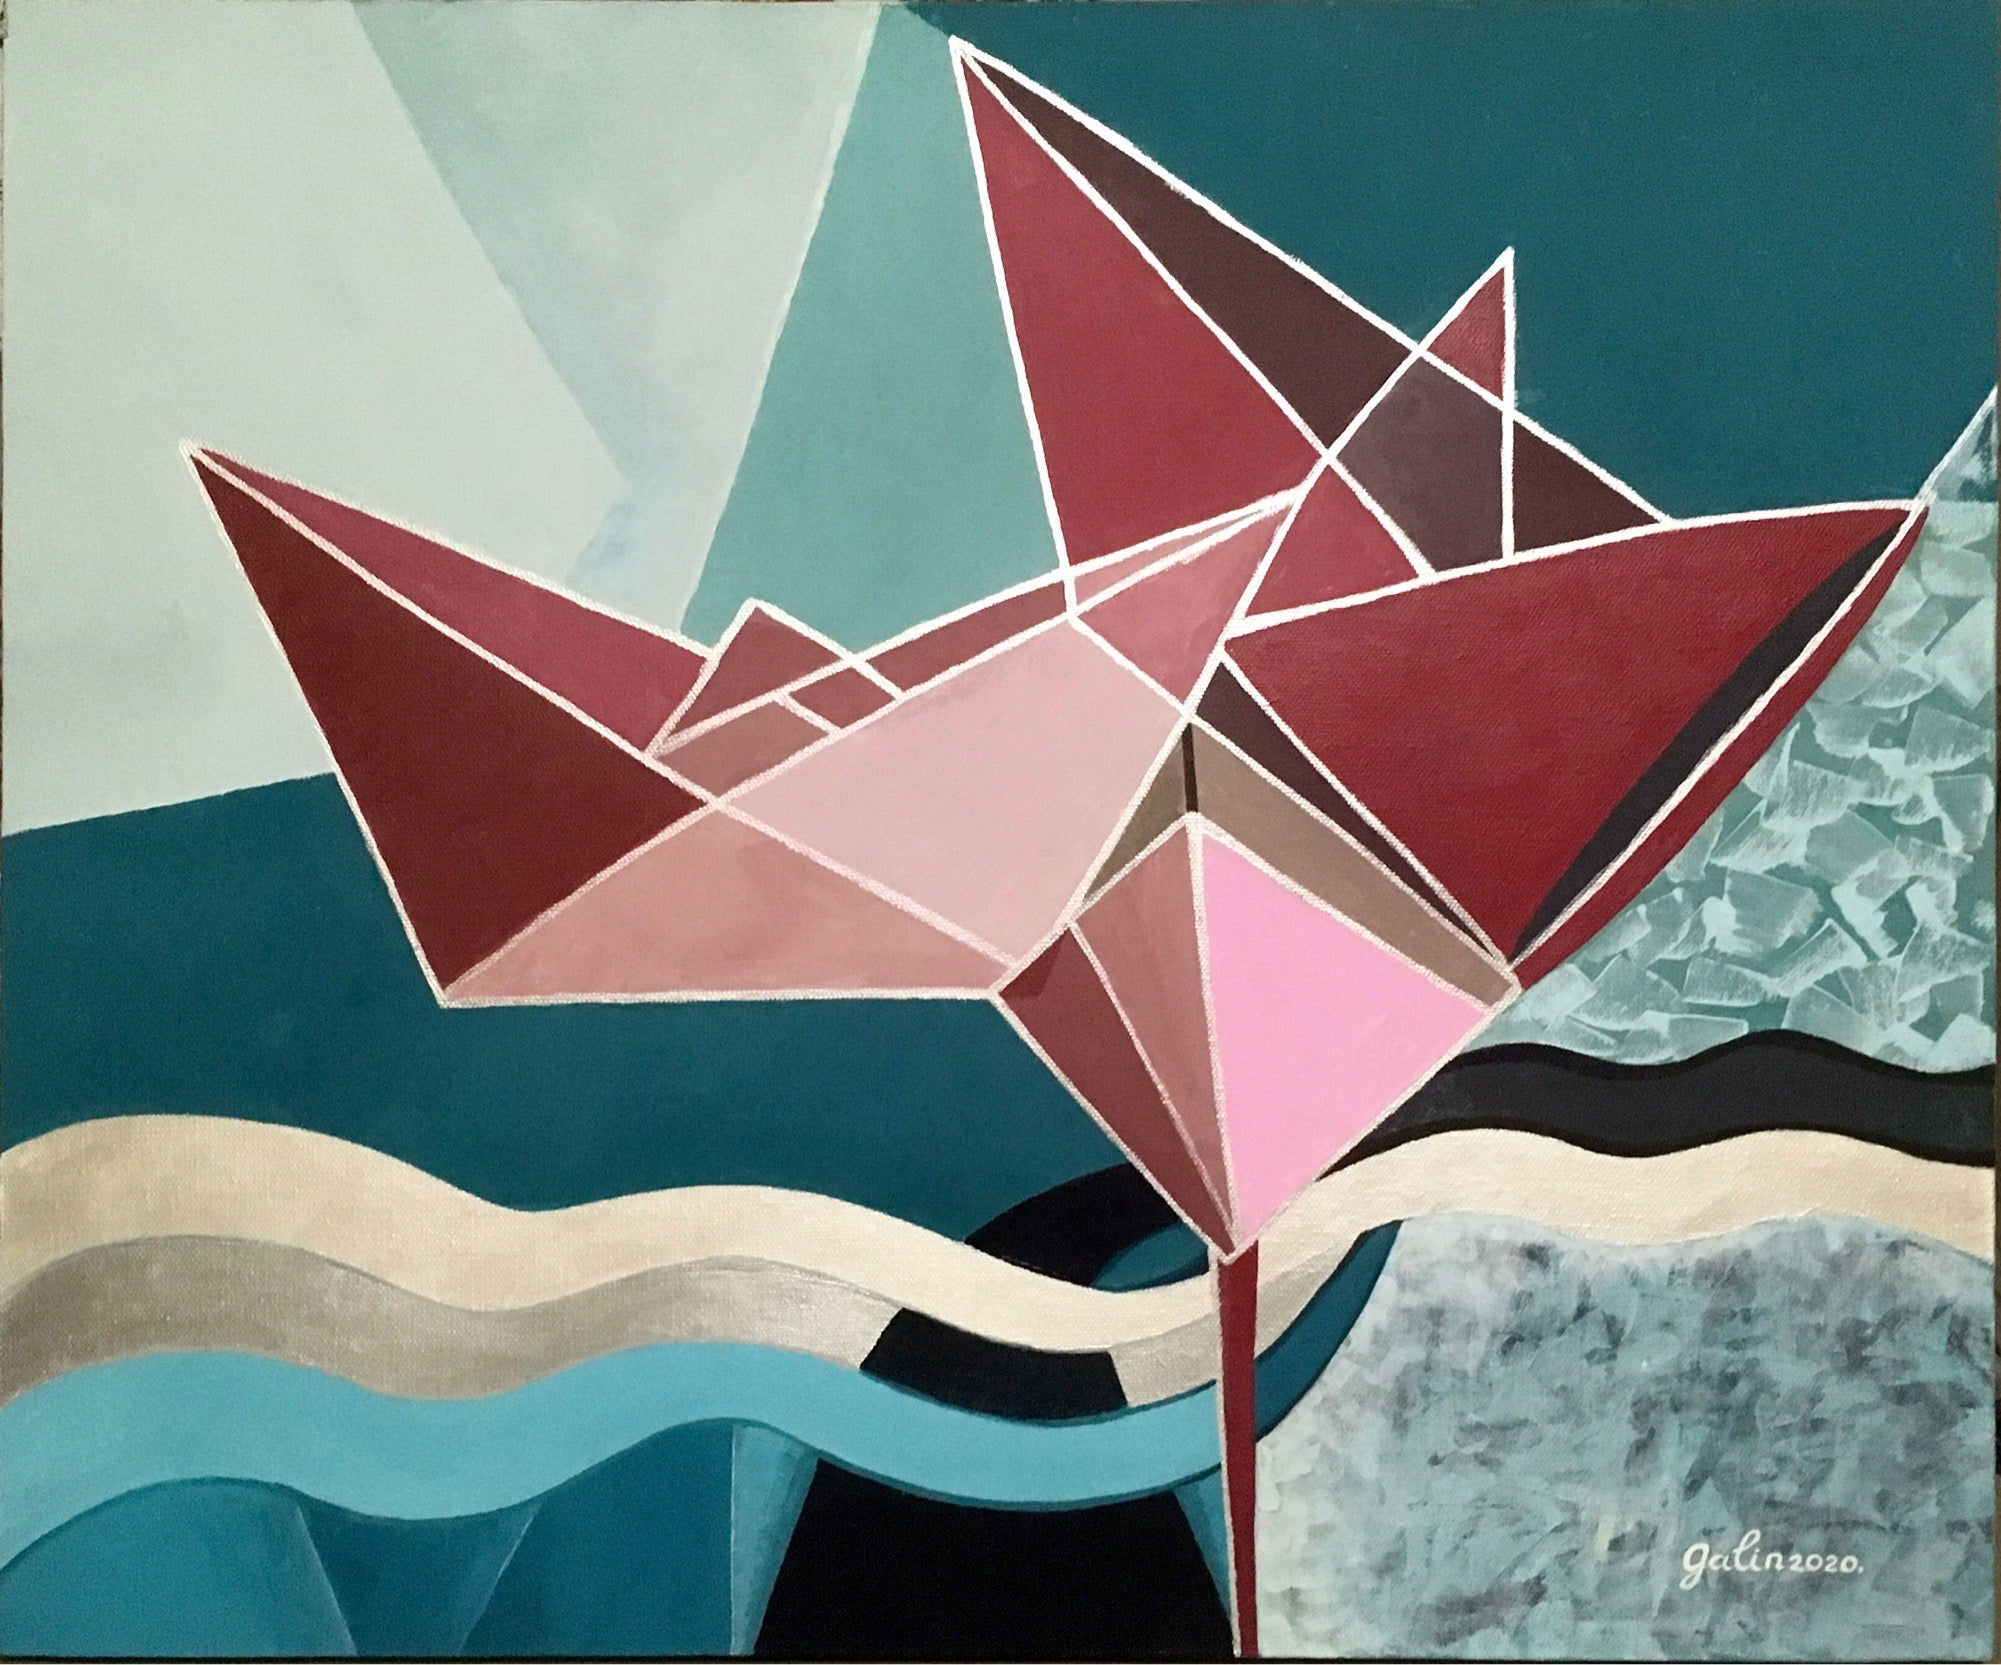 Nostalgia.Origami paper boat-abstract painting,made in pink,turquoise,vine,gold